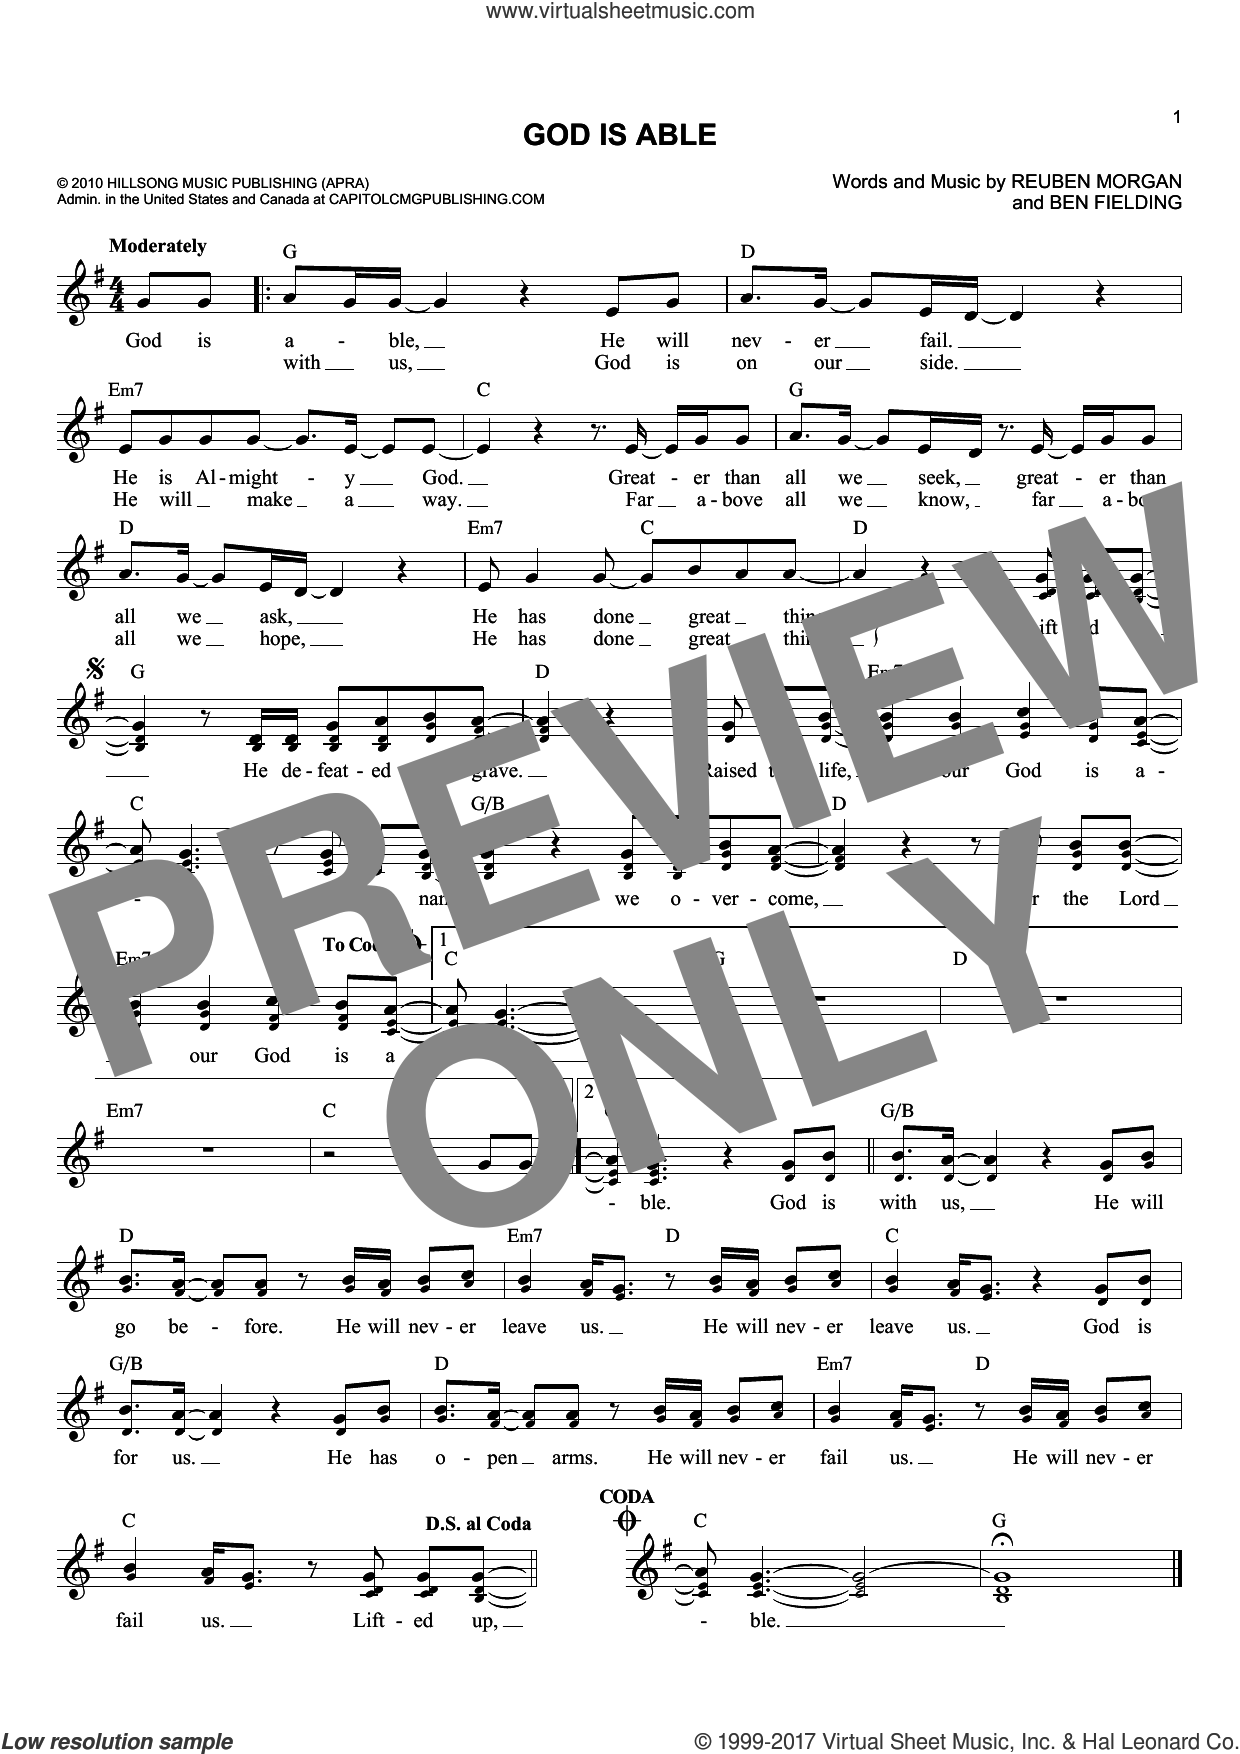 God Is Able sheet music for voice and other instruments (fake book) by Hillsong United, Ben Fielding and Reuben Morgan, intermediate skill level